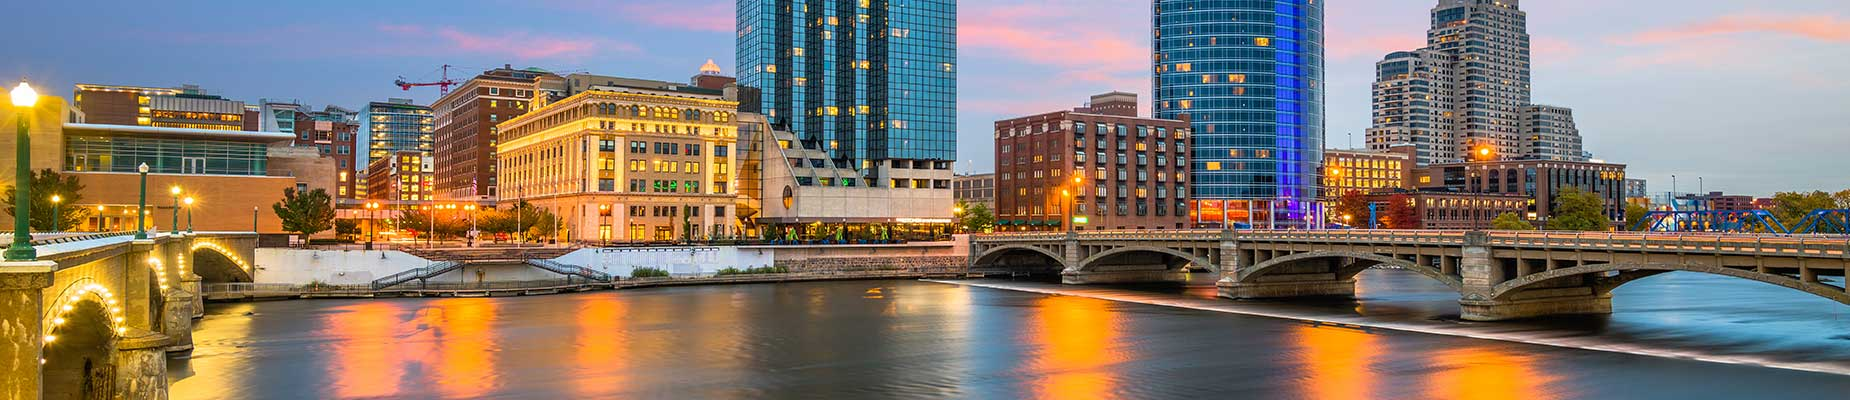 Grand Rapids Michigan Human Resources Consulting Outsourcing